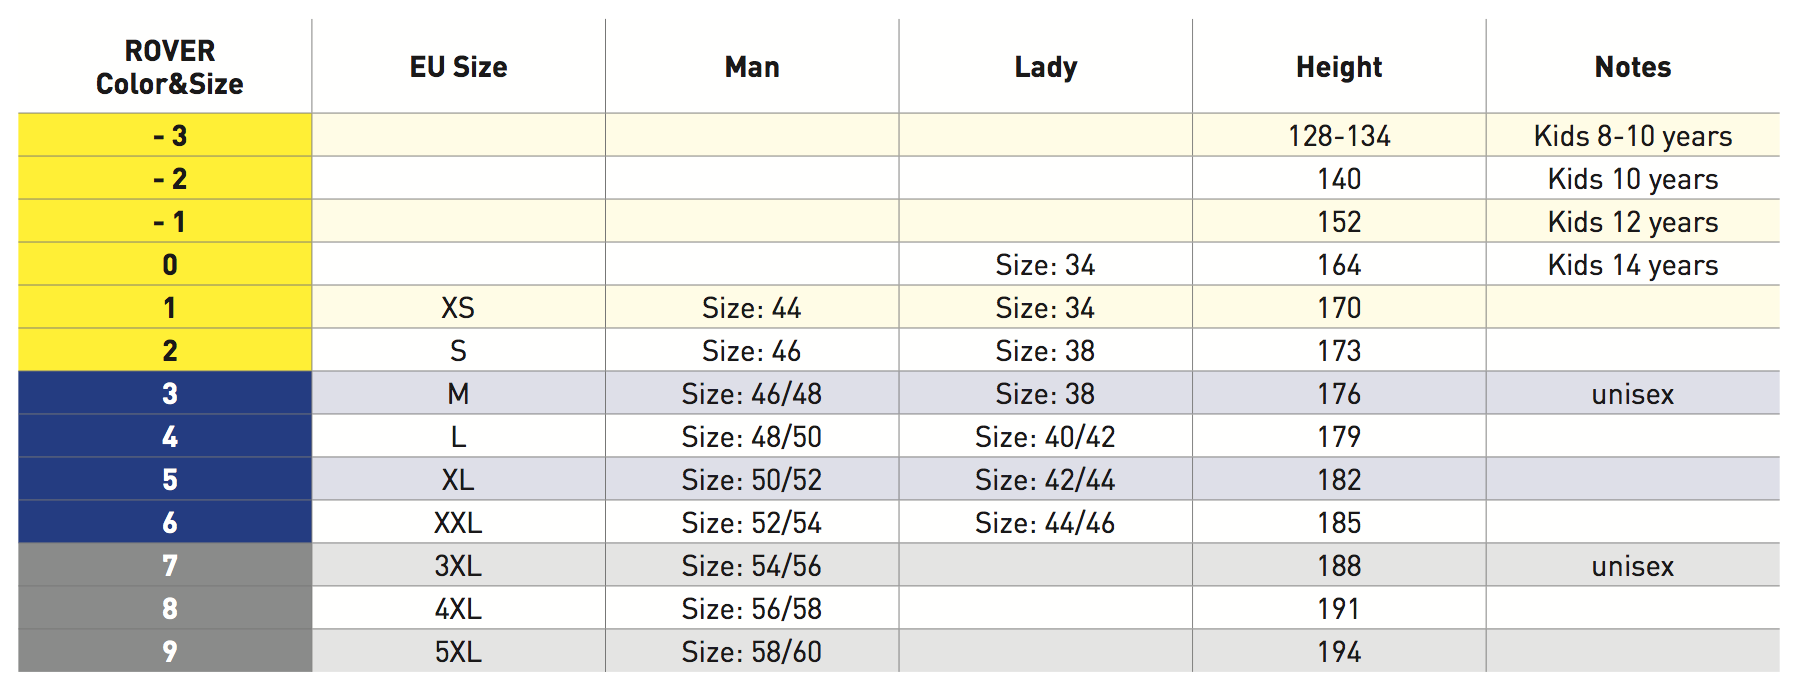 Mares Rover Shortie sizing chart for daily diving guests in Kota Kinabalu, Sabah